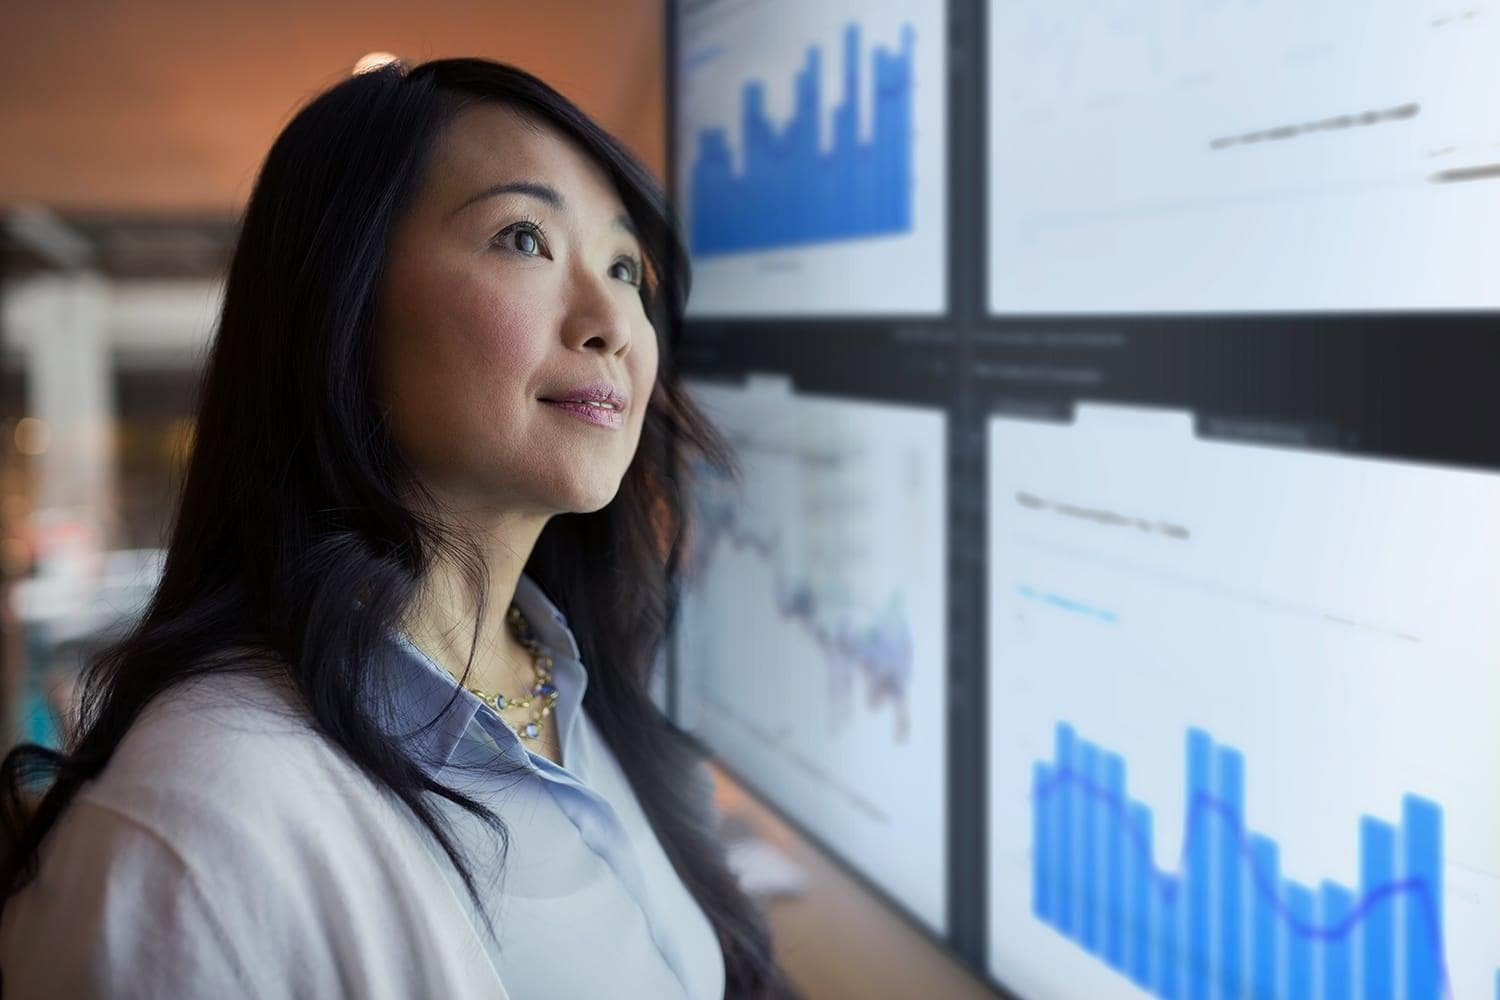 Asian woman views SAS data visualizations on large display